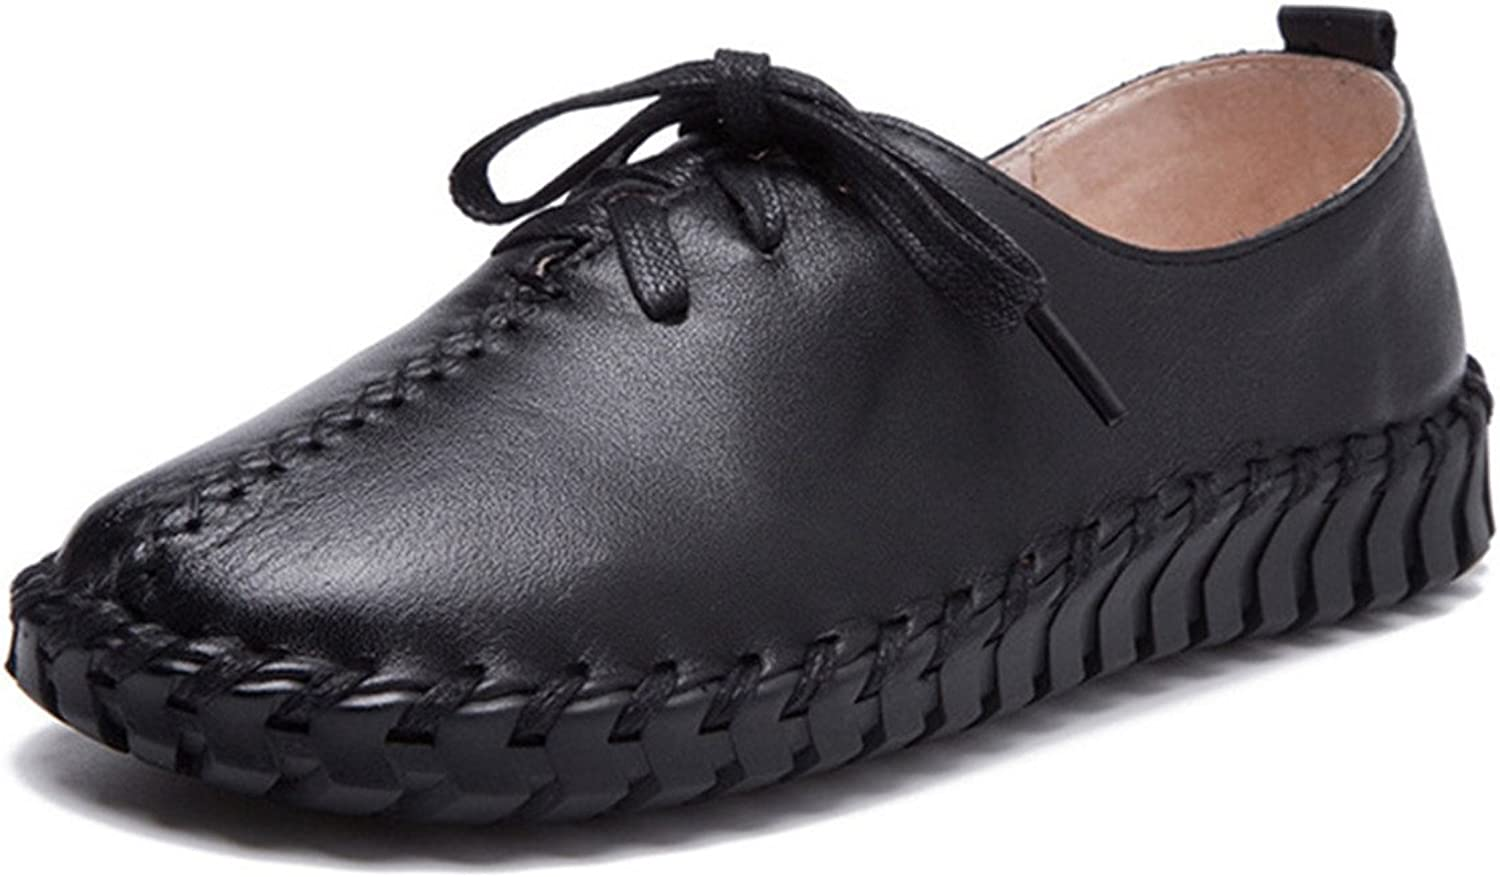 York Zhu Women's Fashion Sneakers, Slip On Lace up Round Toee Moccasin shoes